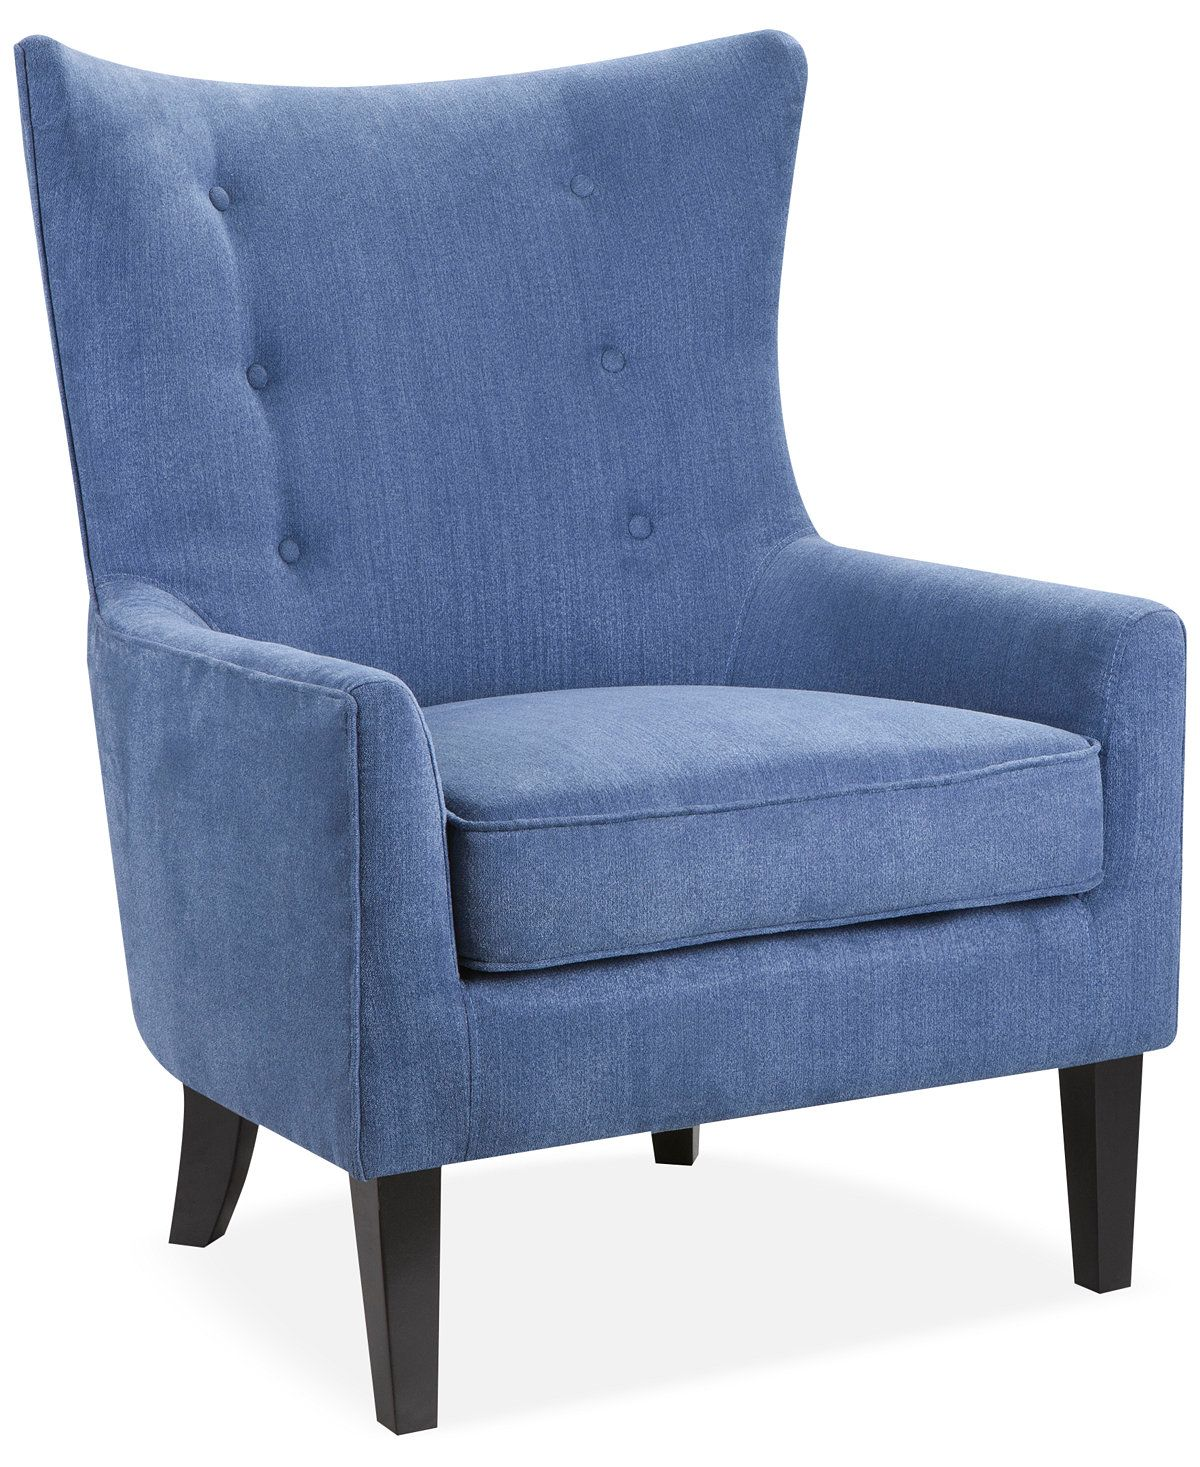 Furniture Brie Printed Fabric Accent Chair Reviews Chairs